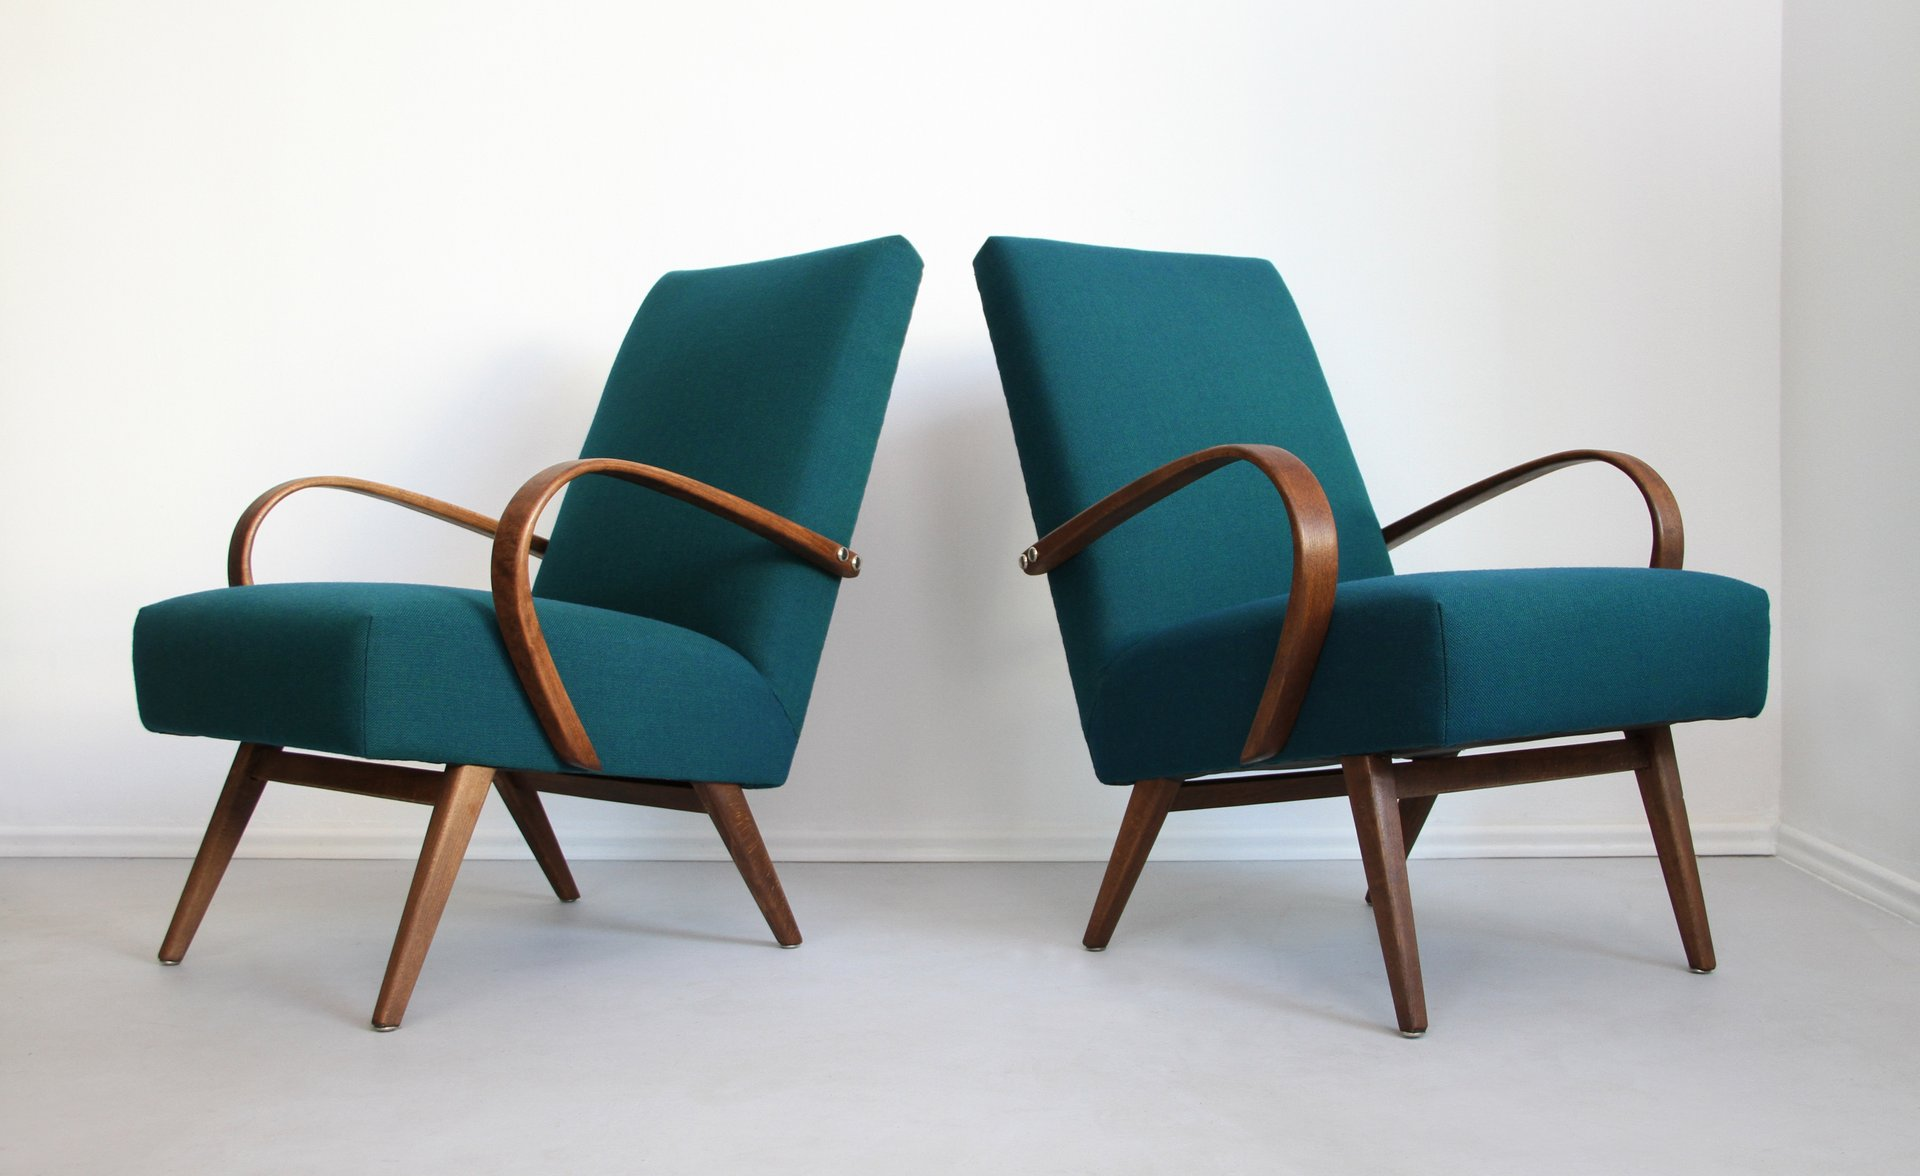 Charmant Type 53 Lounge Chairs By Jaroslav Smidek For Thonet, 1960s, Set Of 2